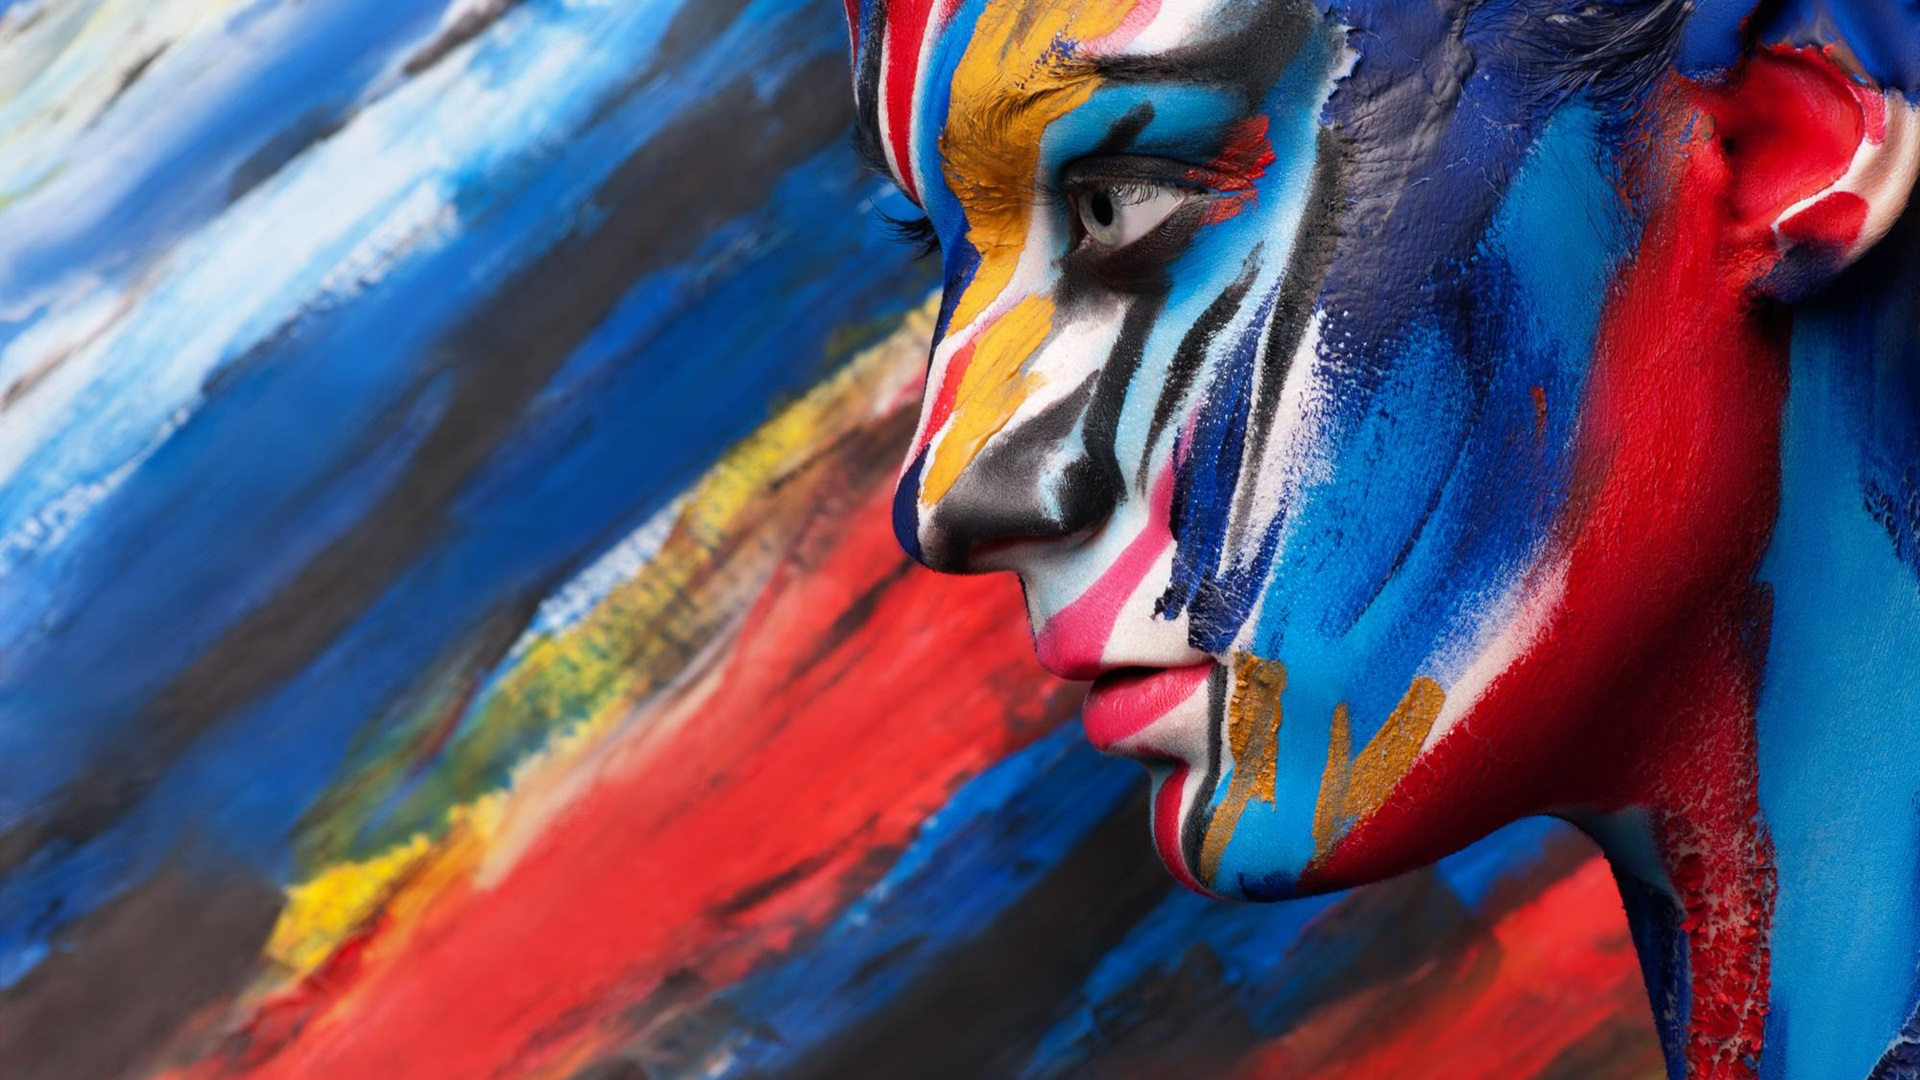 Wallpaper Body art paint, colorful, face side view ...